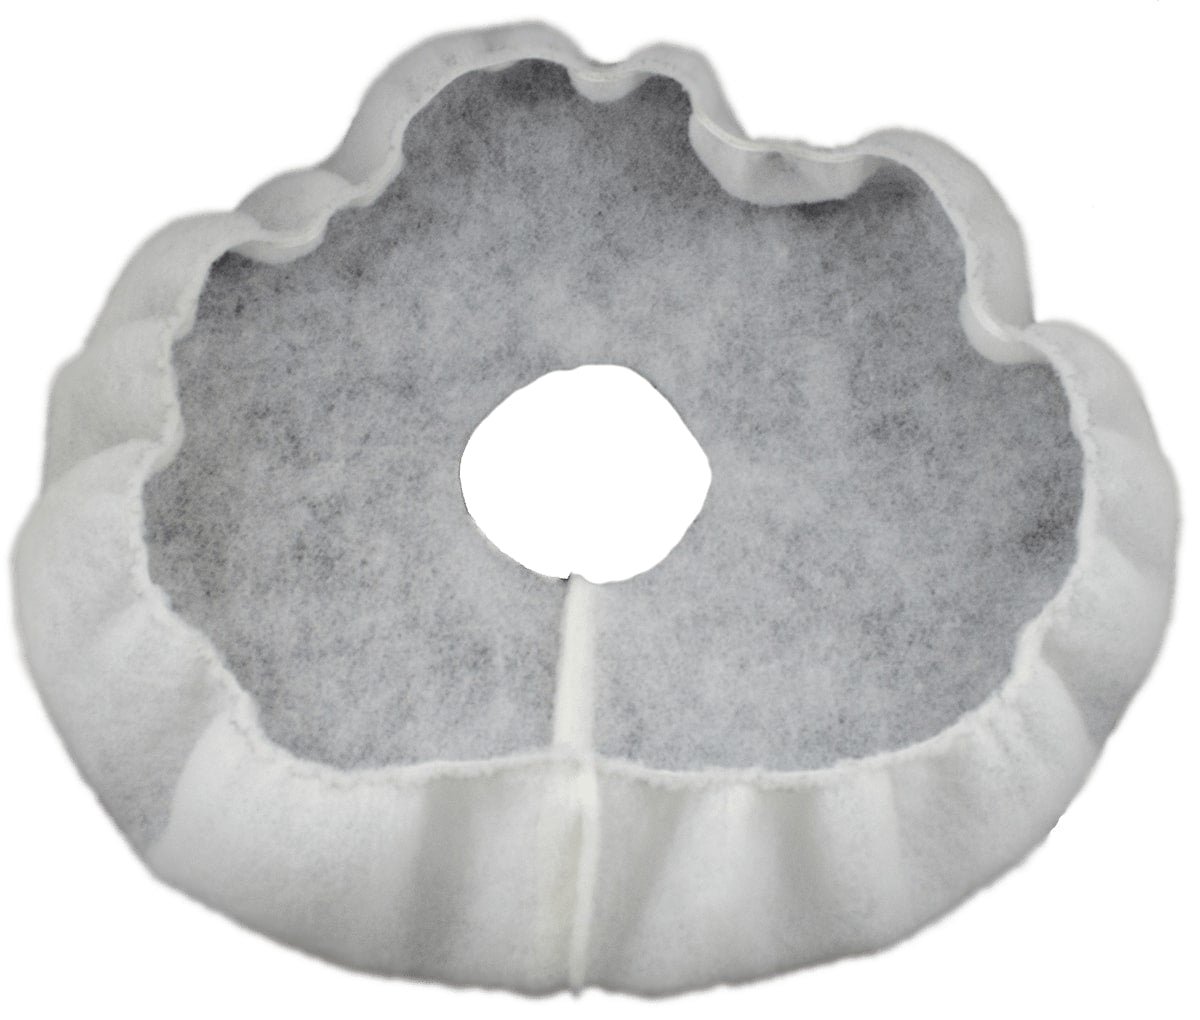 air-circulator-fans-fan-dust-shrouds.jpg